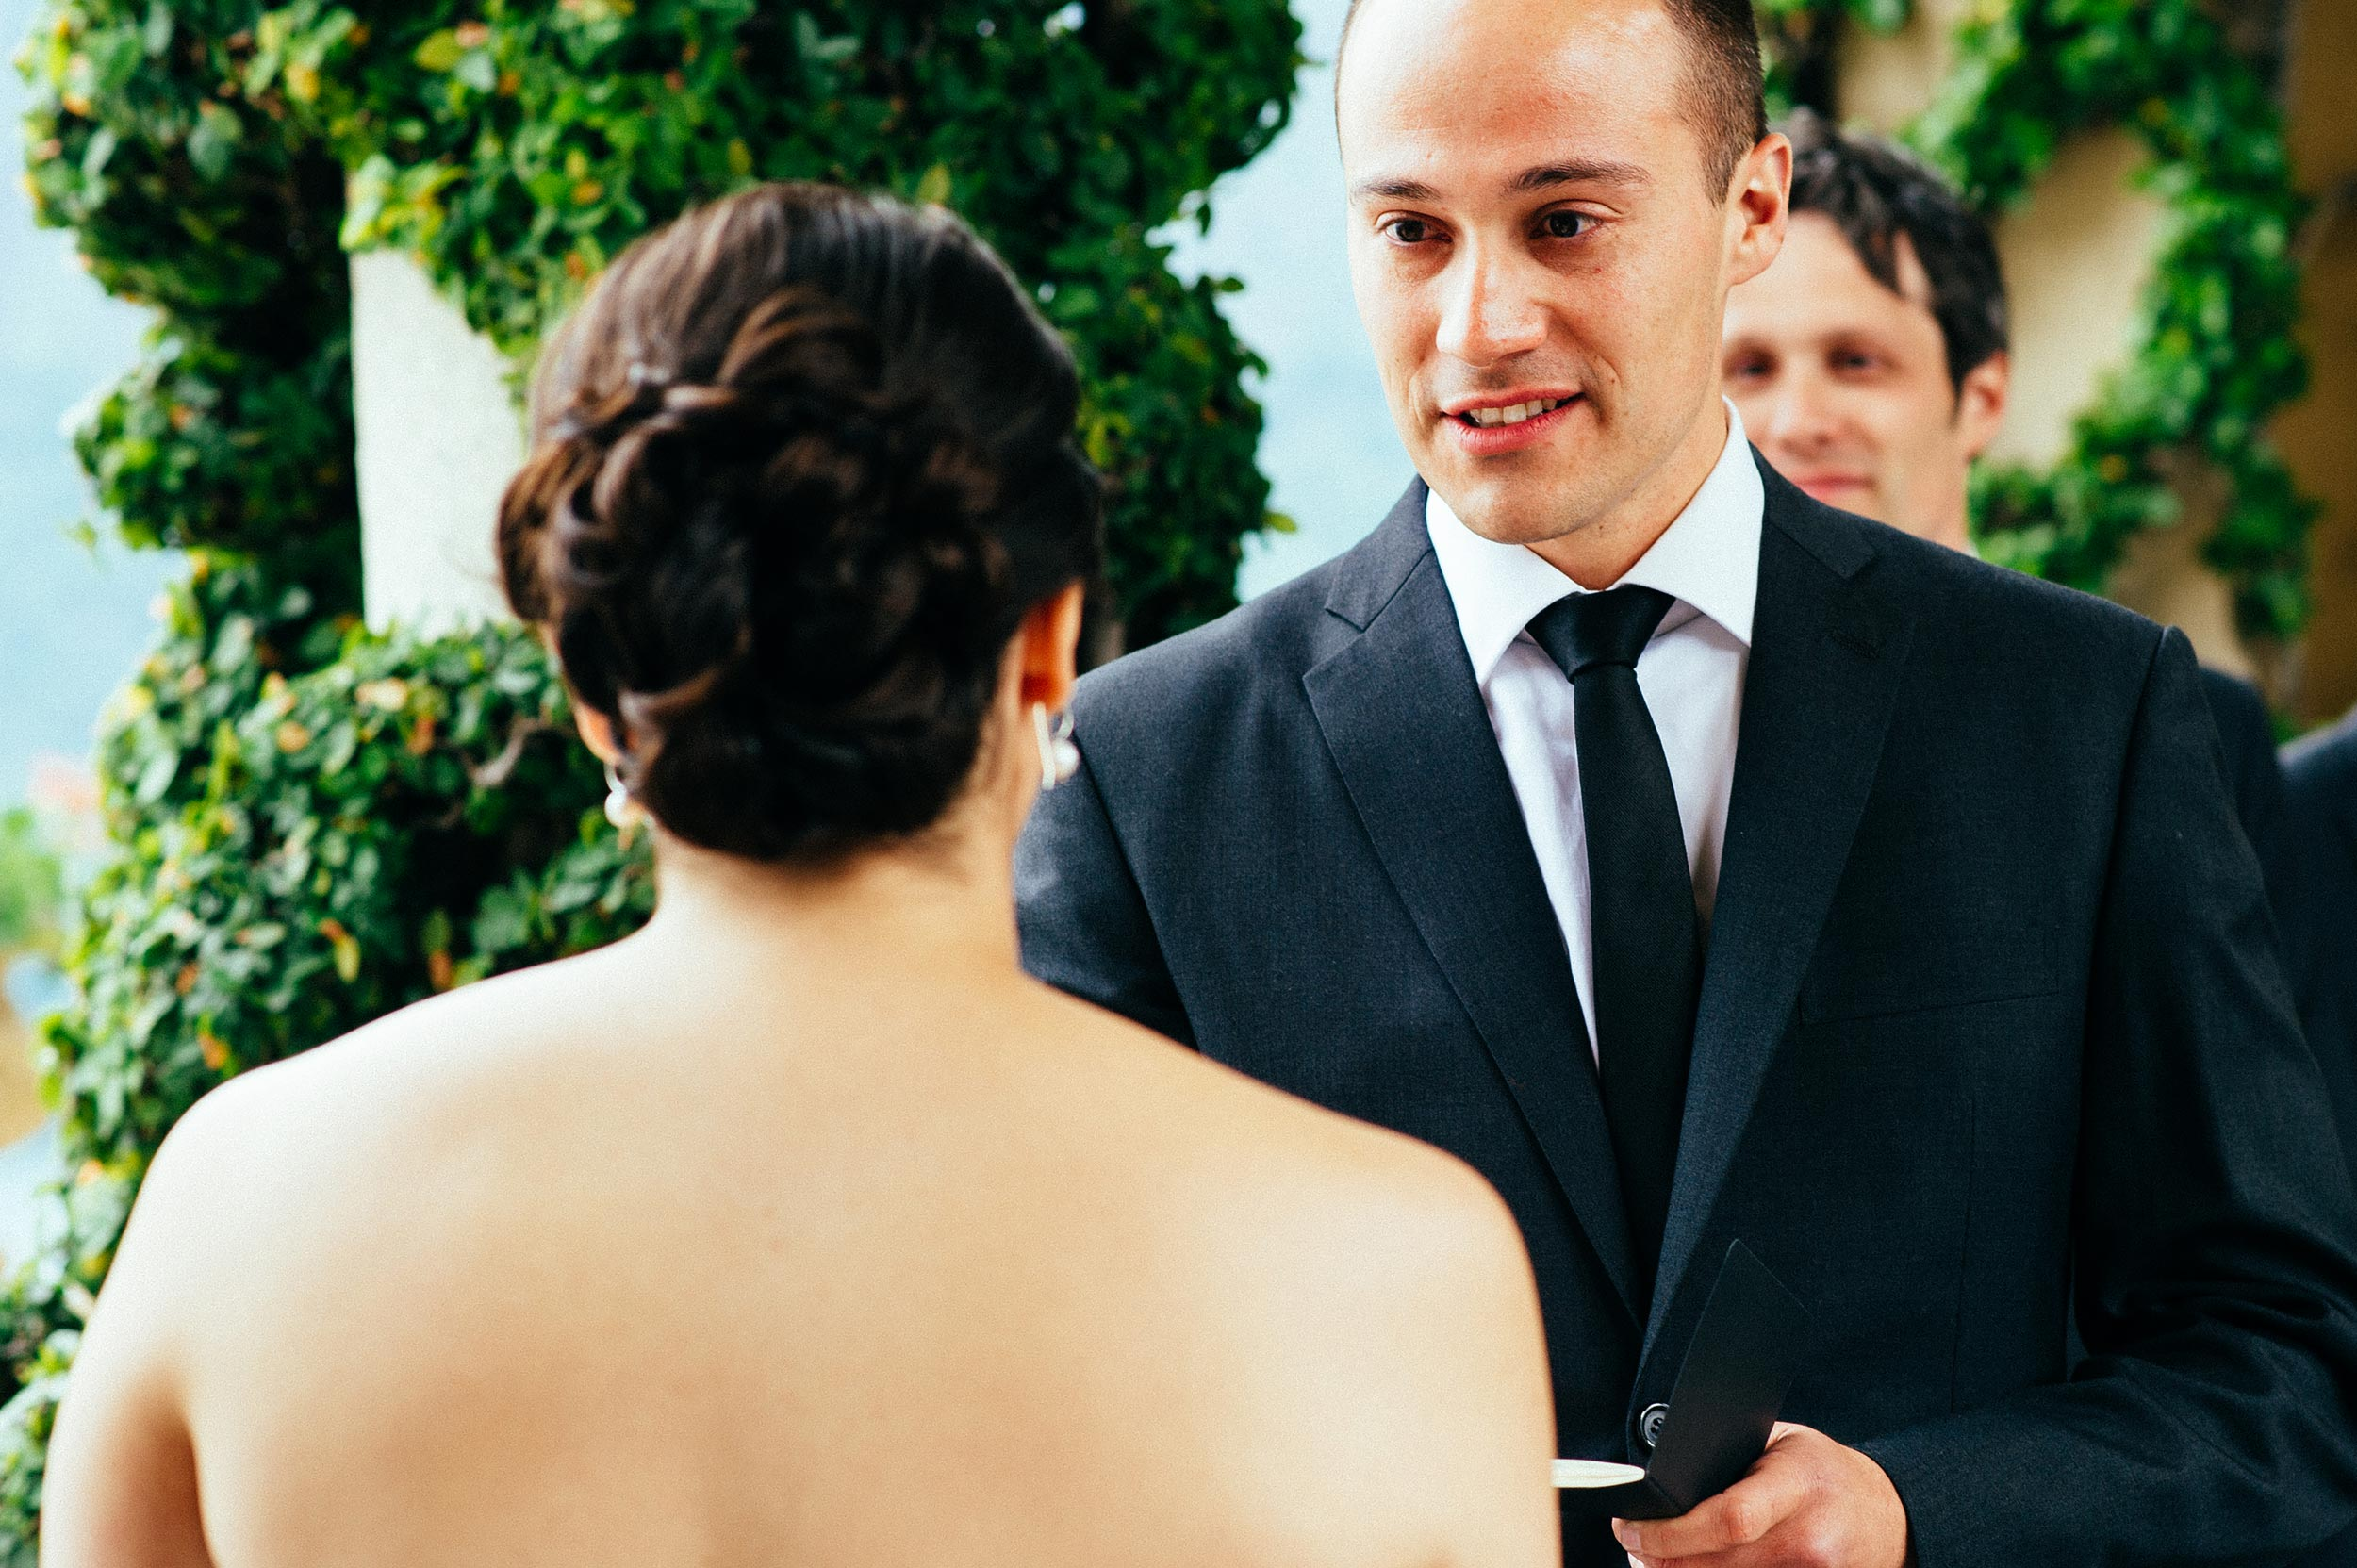 2015-Jon-Lauren-Bellagio-Lake-Como-Wedding-Photographer-Italy-Alessandro-Avenali-26.jpg